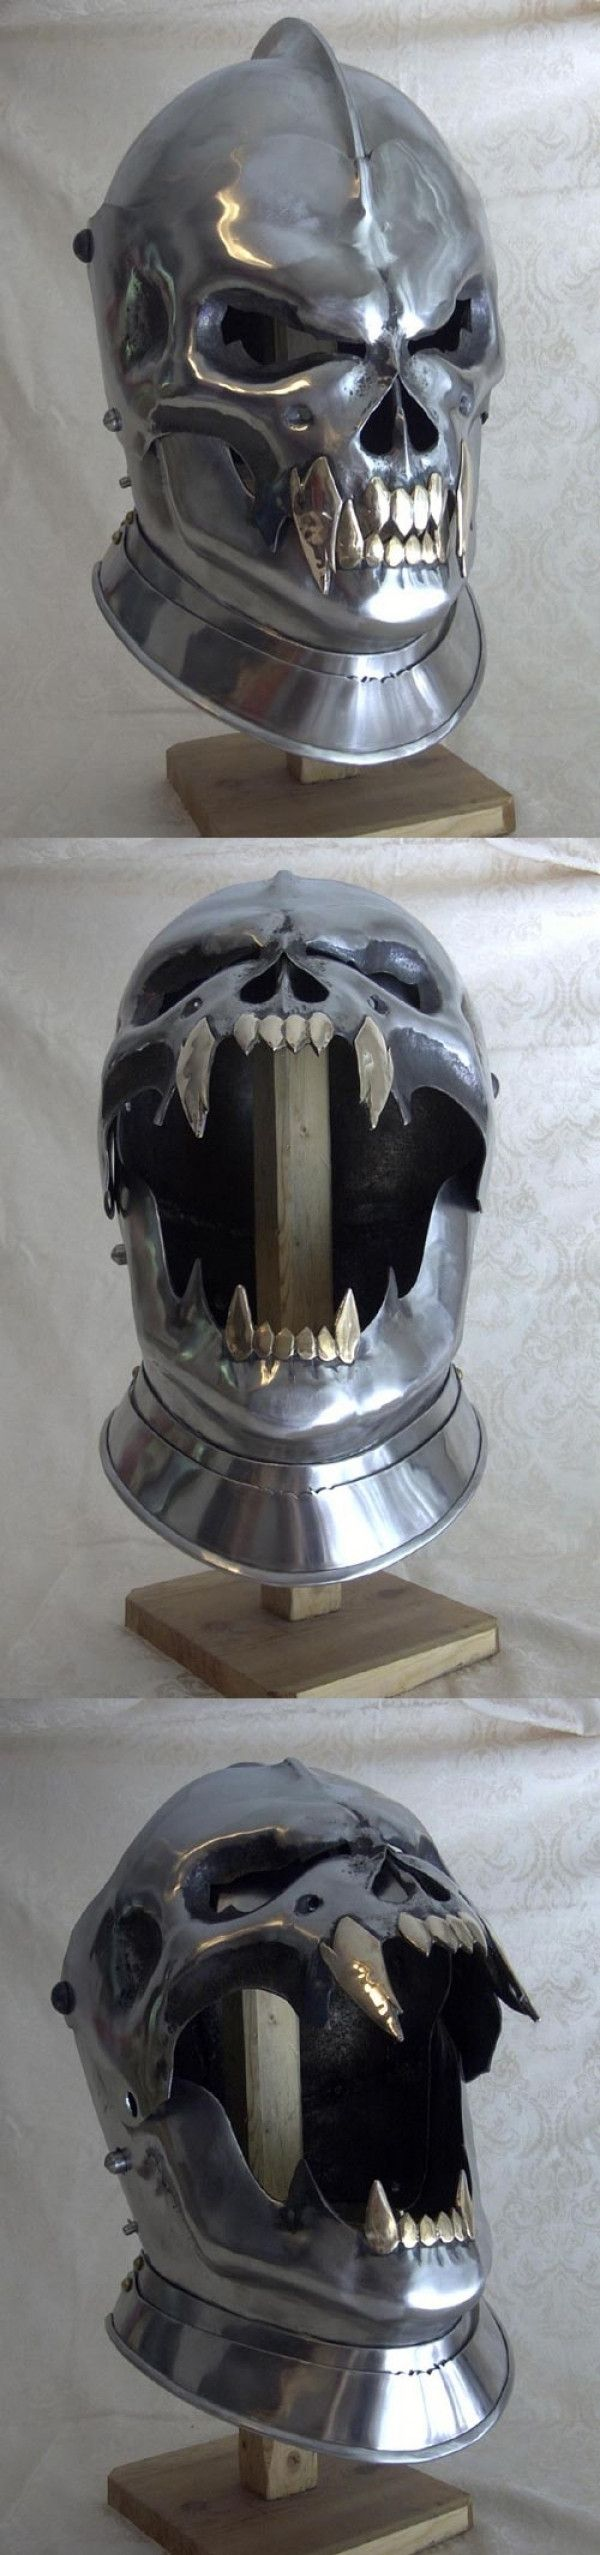 The most badass helmet ever crafted